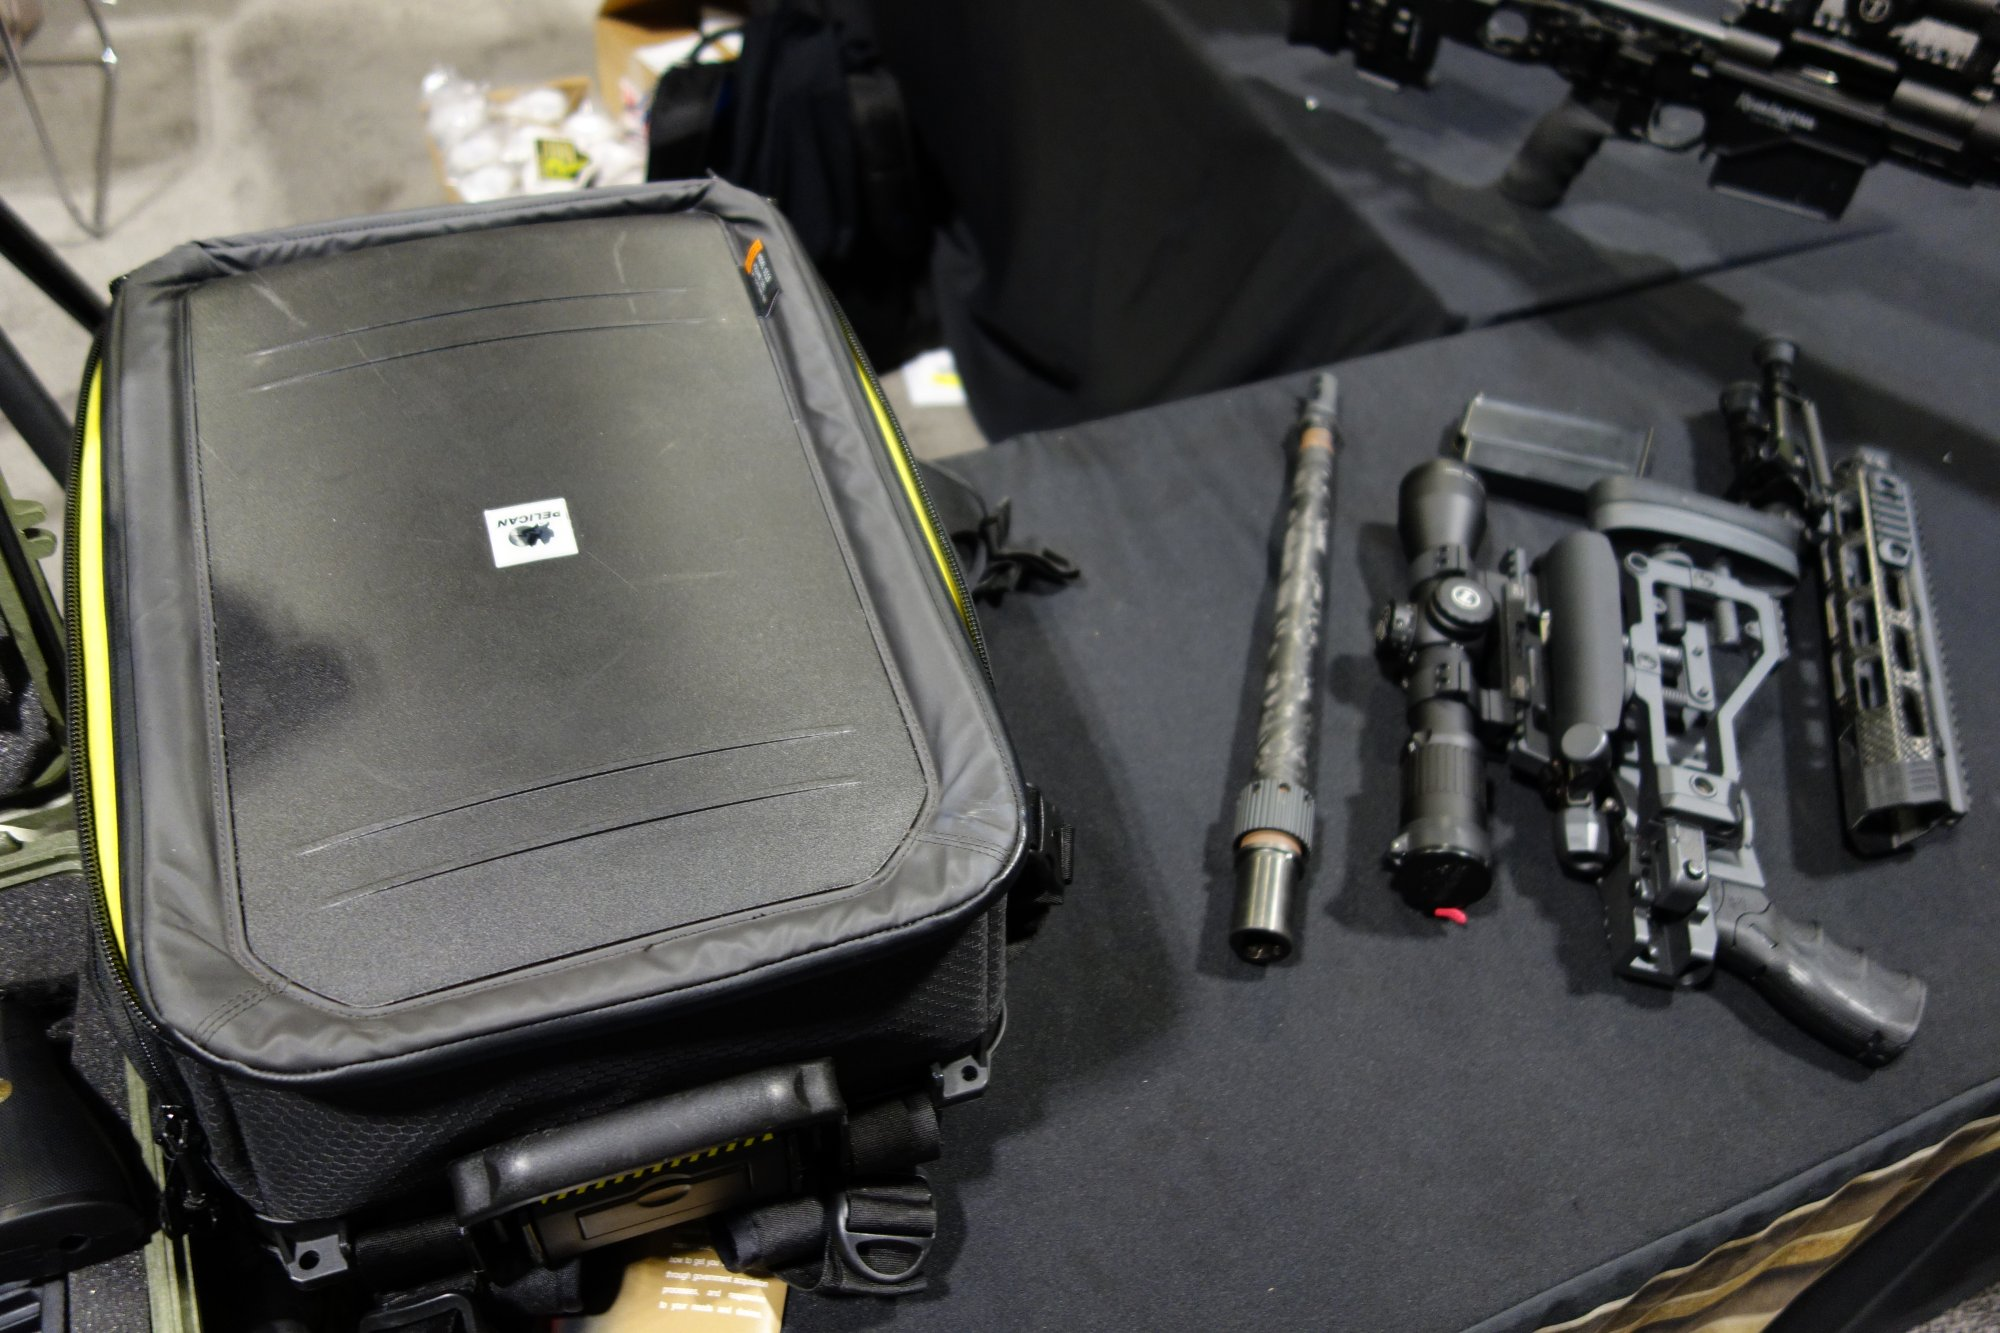 Remington Defense CSR Concealable Sniper Rifle Rucksack Rifle Breakdown Takedown Suppressed Sniper Carbine with Proof Research 16 inch Carbone Fiber Wrapped Barrel NDIA SOFIC 2014 David Crane DefenseReview.com DR 12 Remington Defense CSR (Concealable Sniper Rifle) Rucksack Rifle: Lightweight, Compact 7.62mm NATO/.308 Win. Bolt Action Breakdown/Takedown Suppressed Sniper Carbine with 14 16 Proof Research Carbon Fiber Wrapped Barrel for Your Backpack! (Video!)